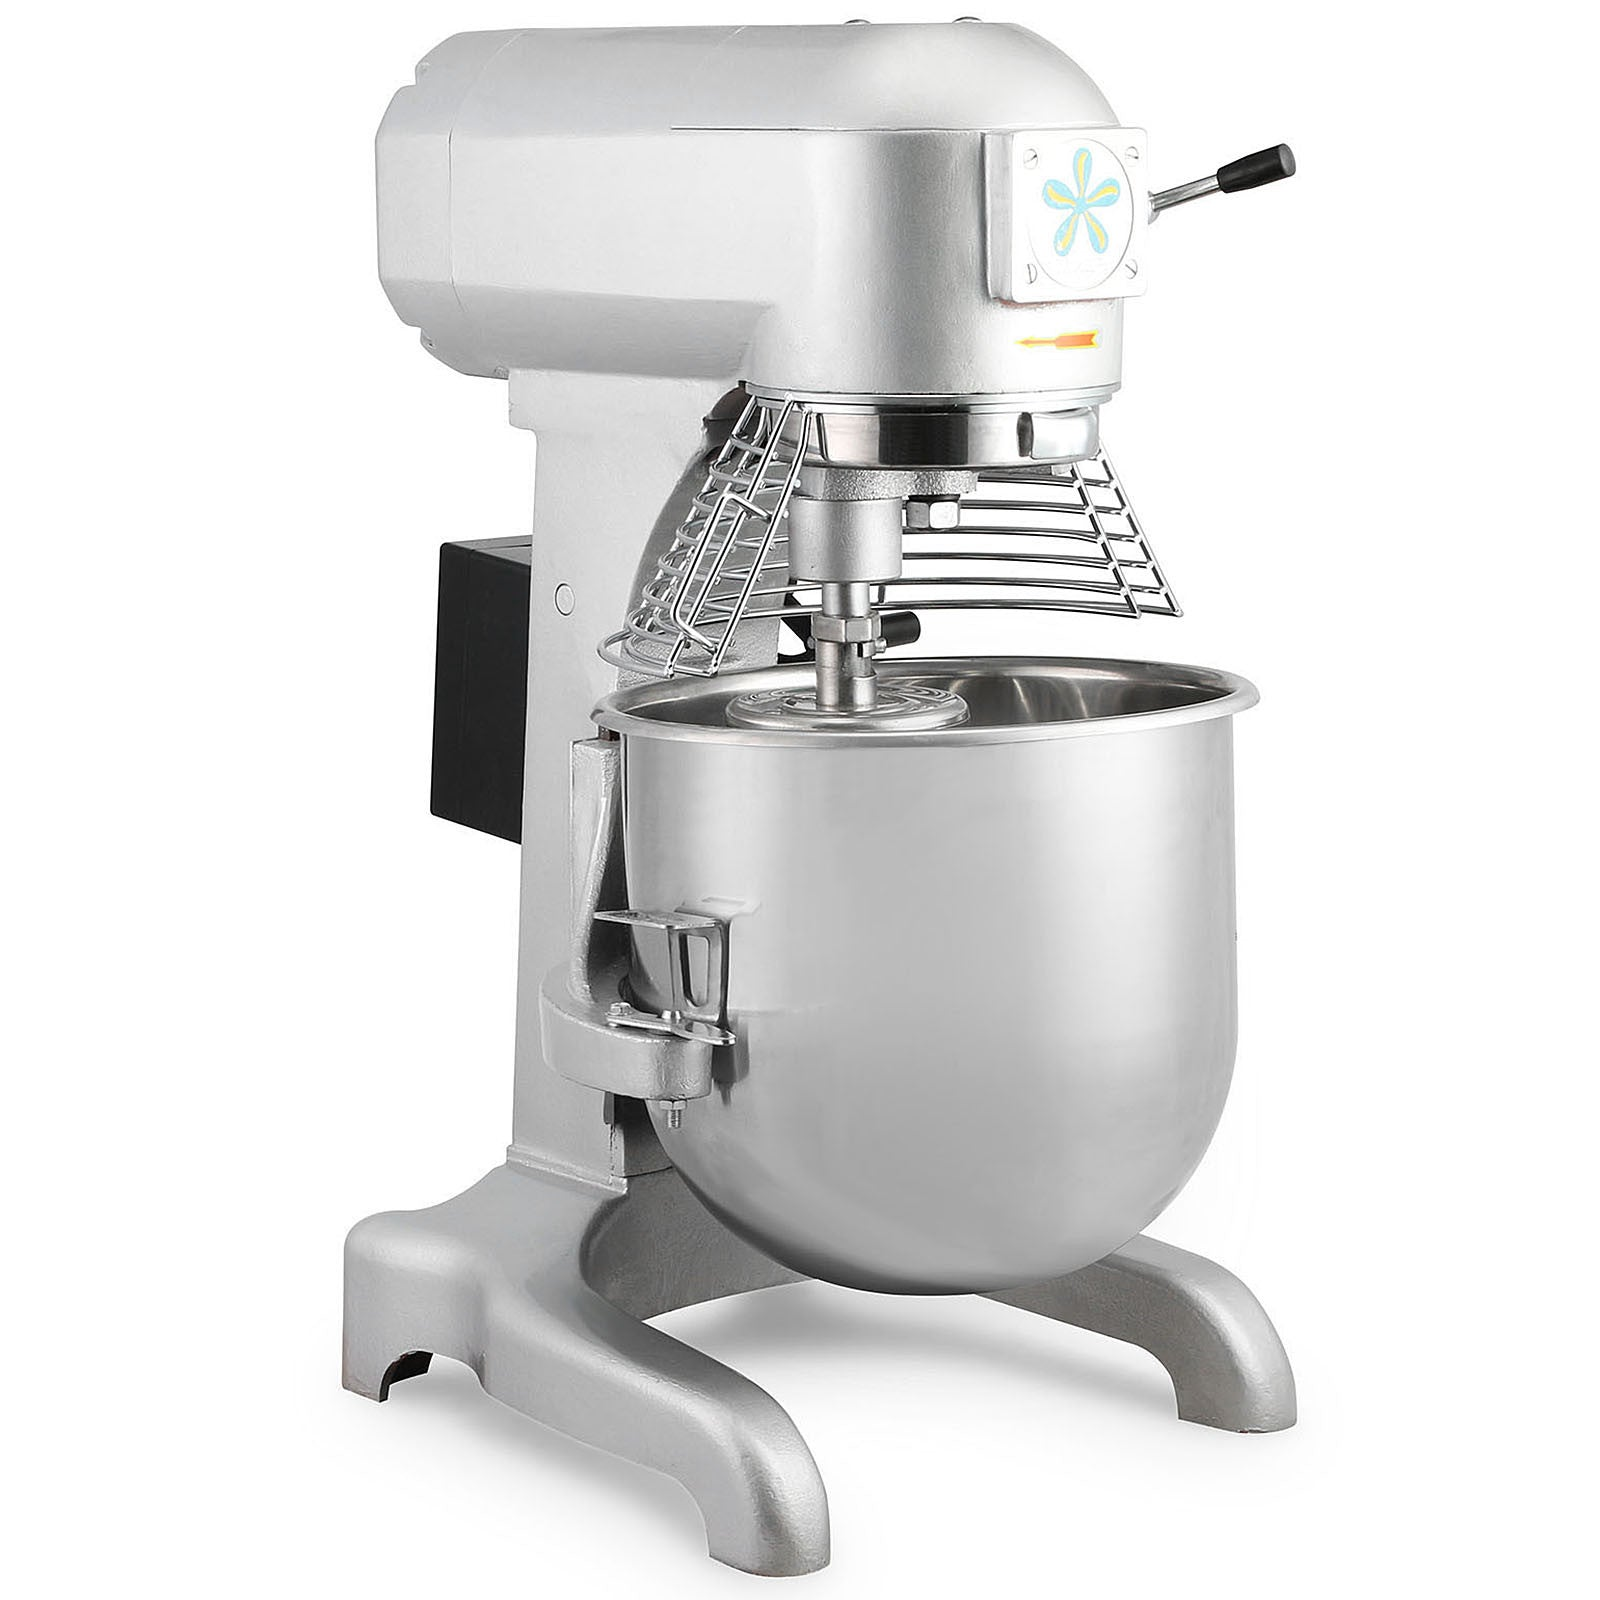 Vevor 30qt Planetary Mixer & Guard & 3 Attachments 1.5 Hp Commercial Dough Mixer